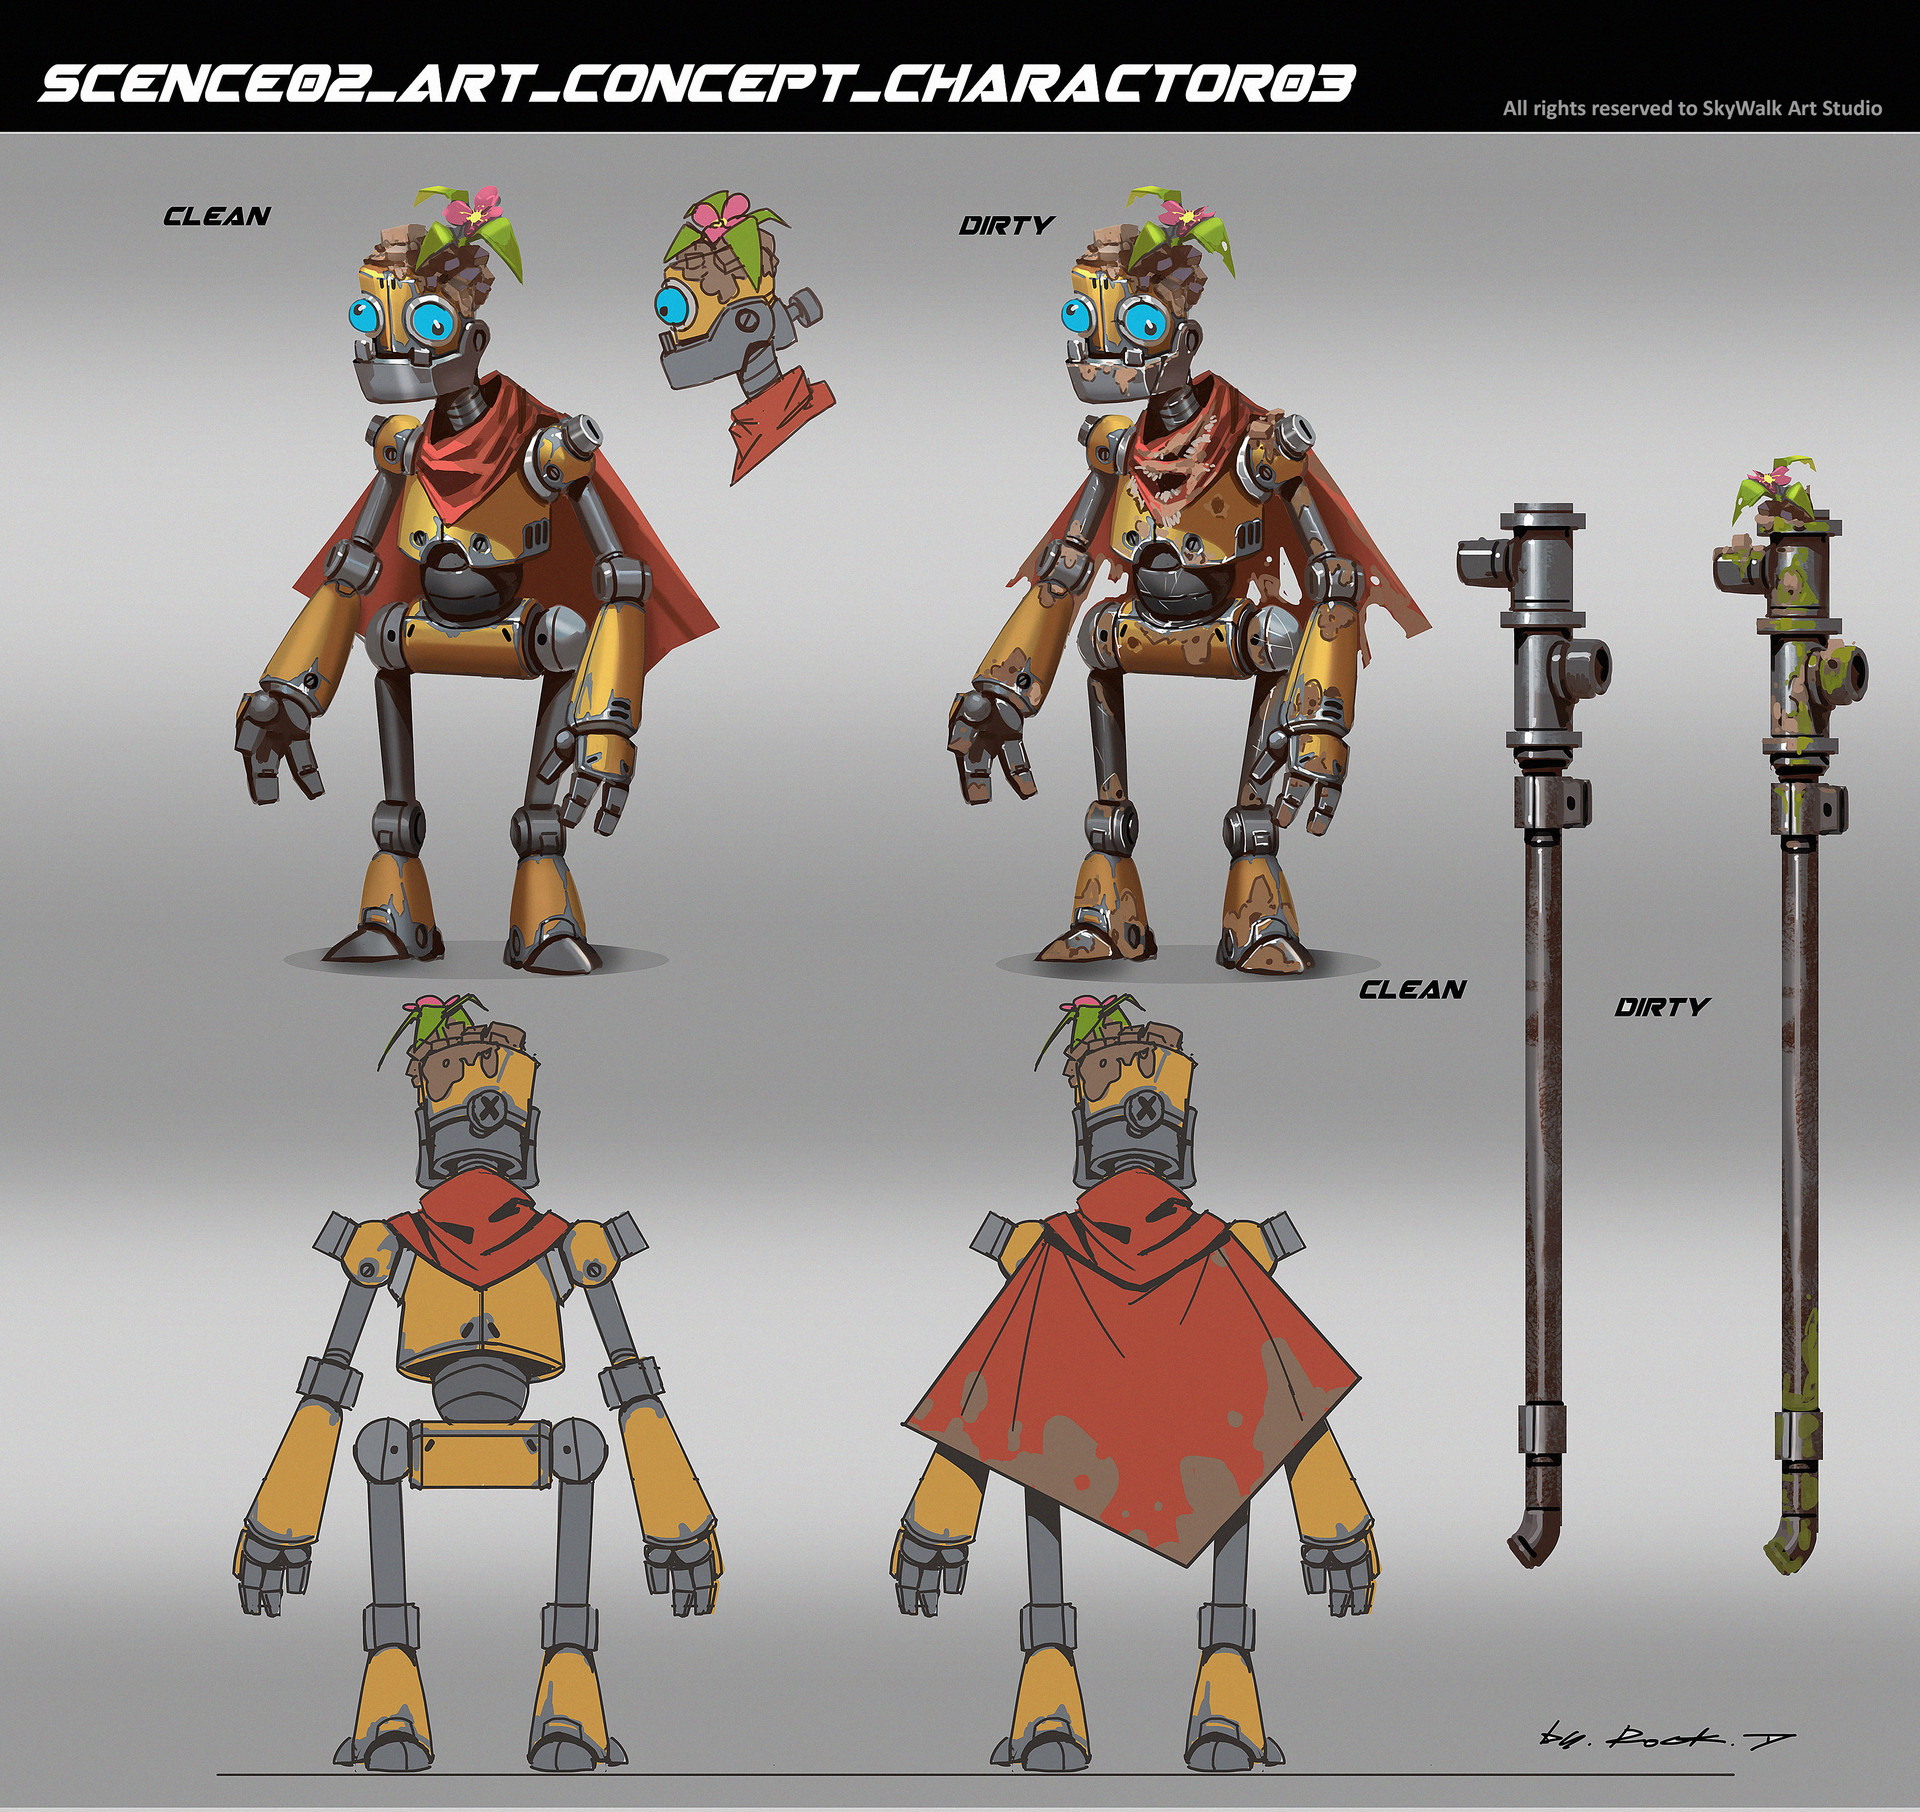 Rock d scence2 charactor03 concept